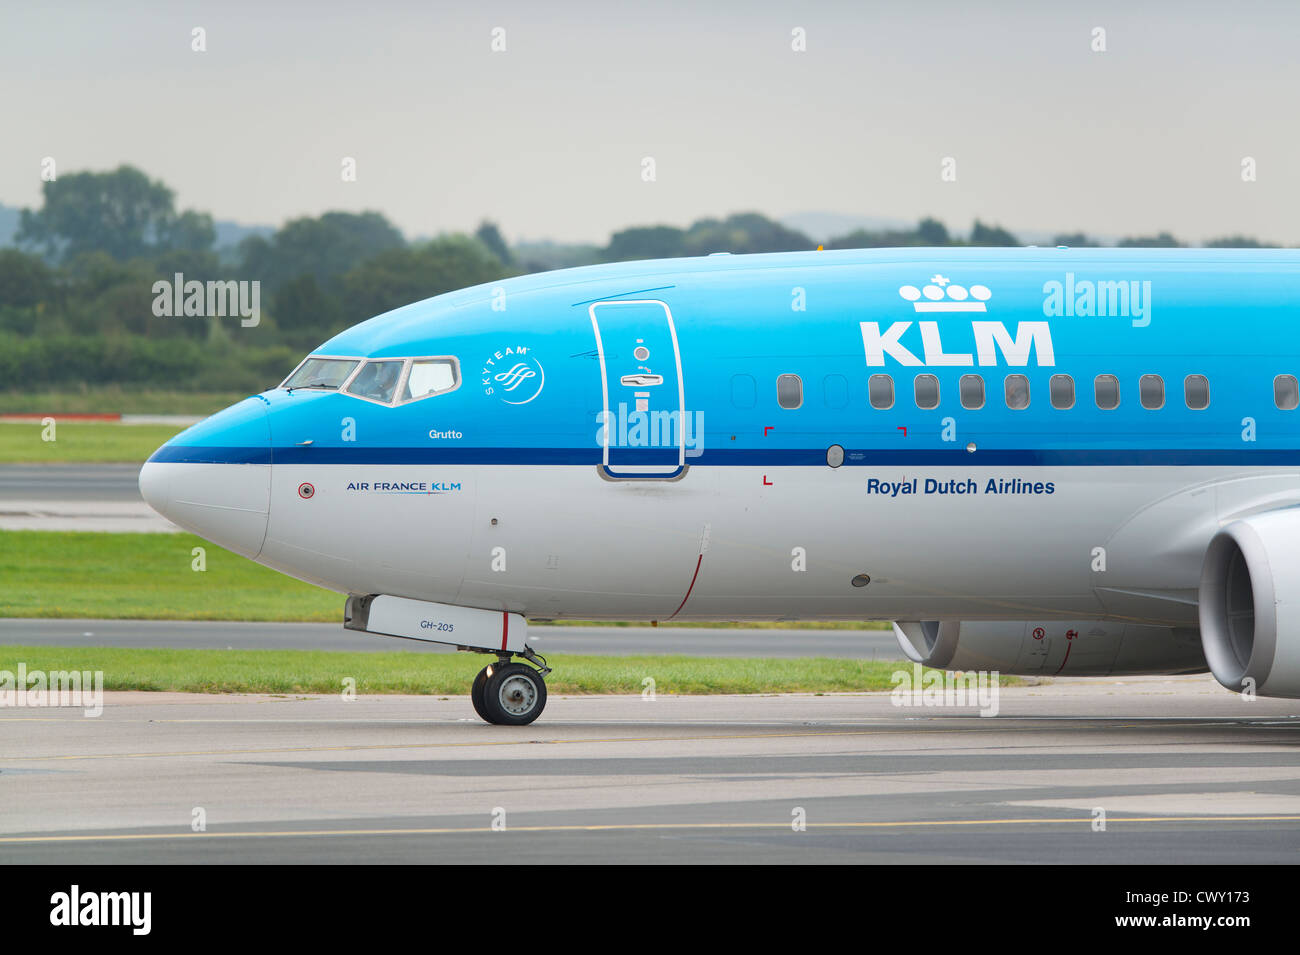 A KLM Dutch Royal Airlines Boeing 737 taxiing on the runway of Manchester International Airport (Editorial use only) - Stock Image